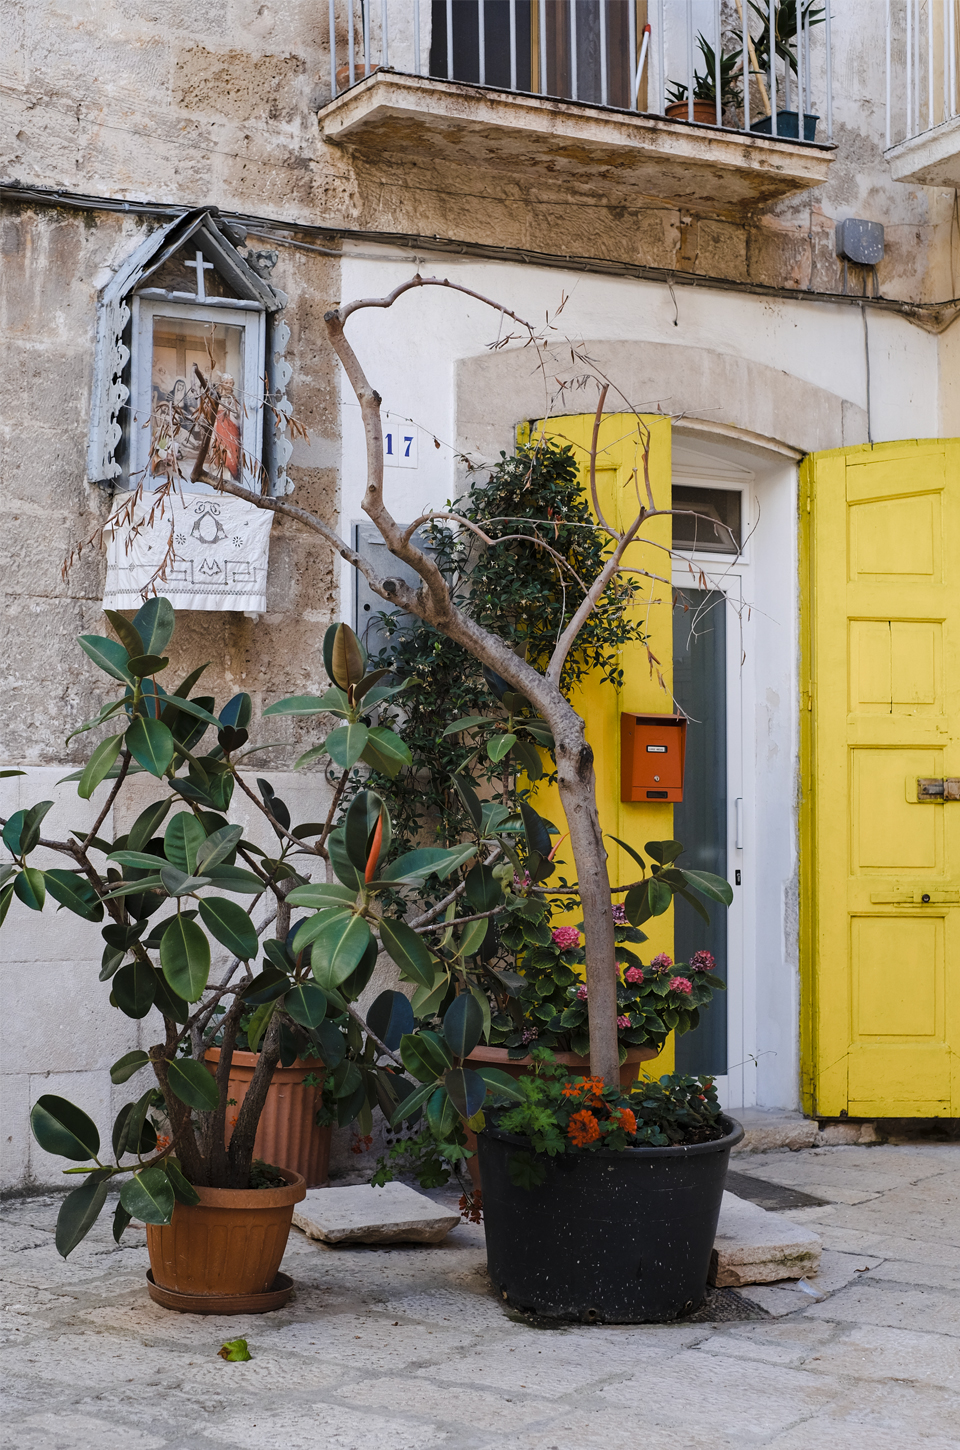 A glimpse of Puglia, yellow door and plants in Bari